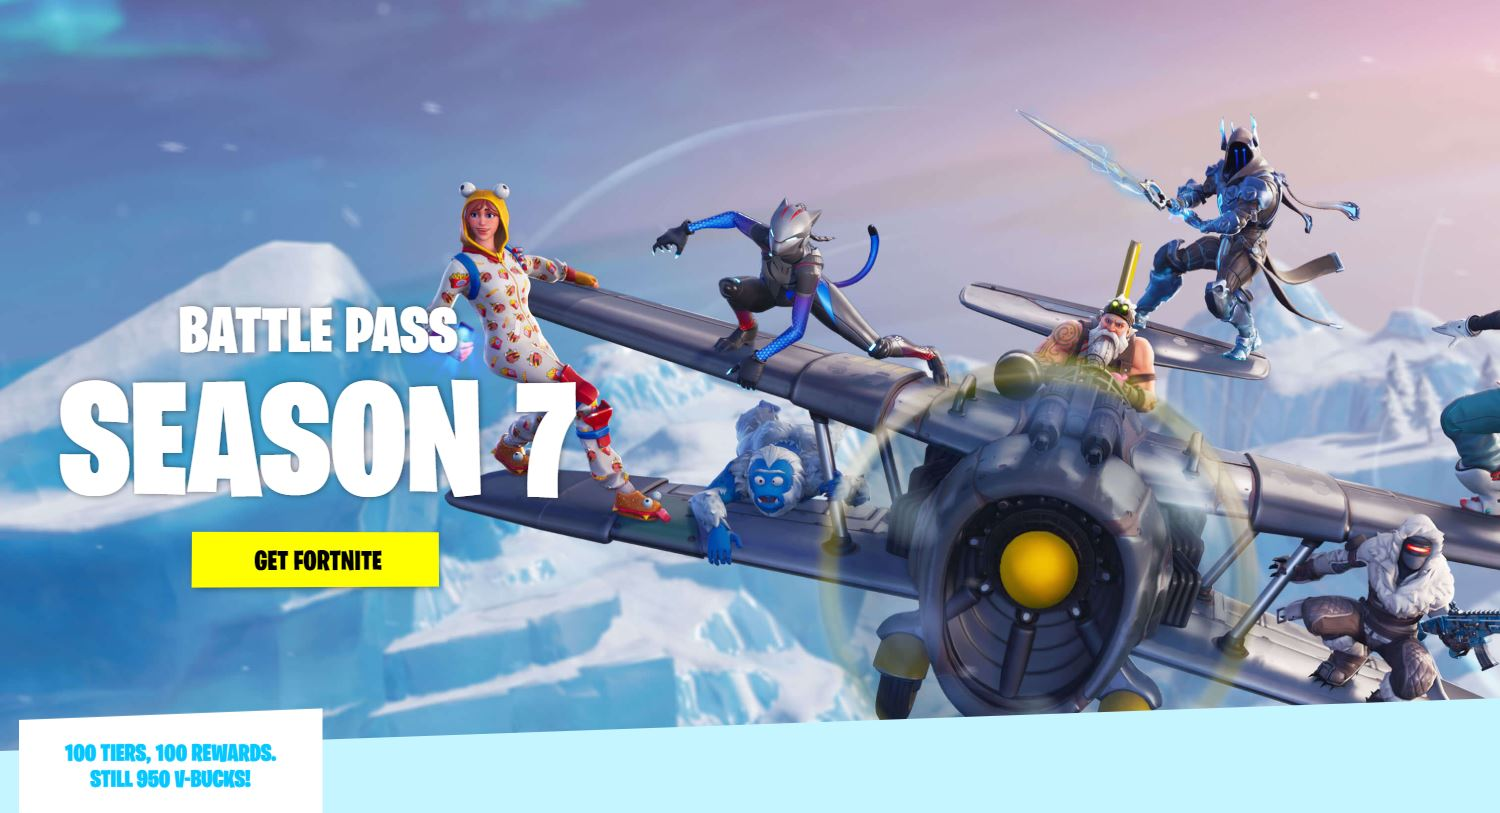 All Fortnite Season 7 Battle Pass Skins Cosmetics Items